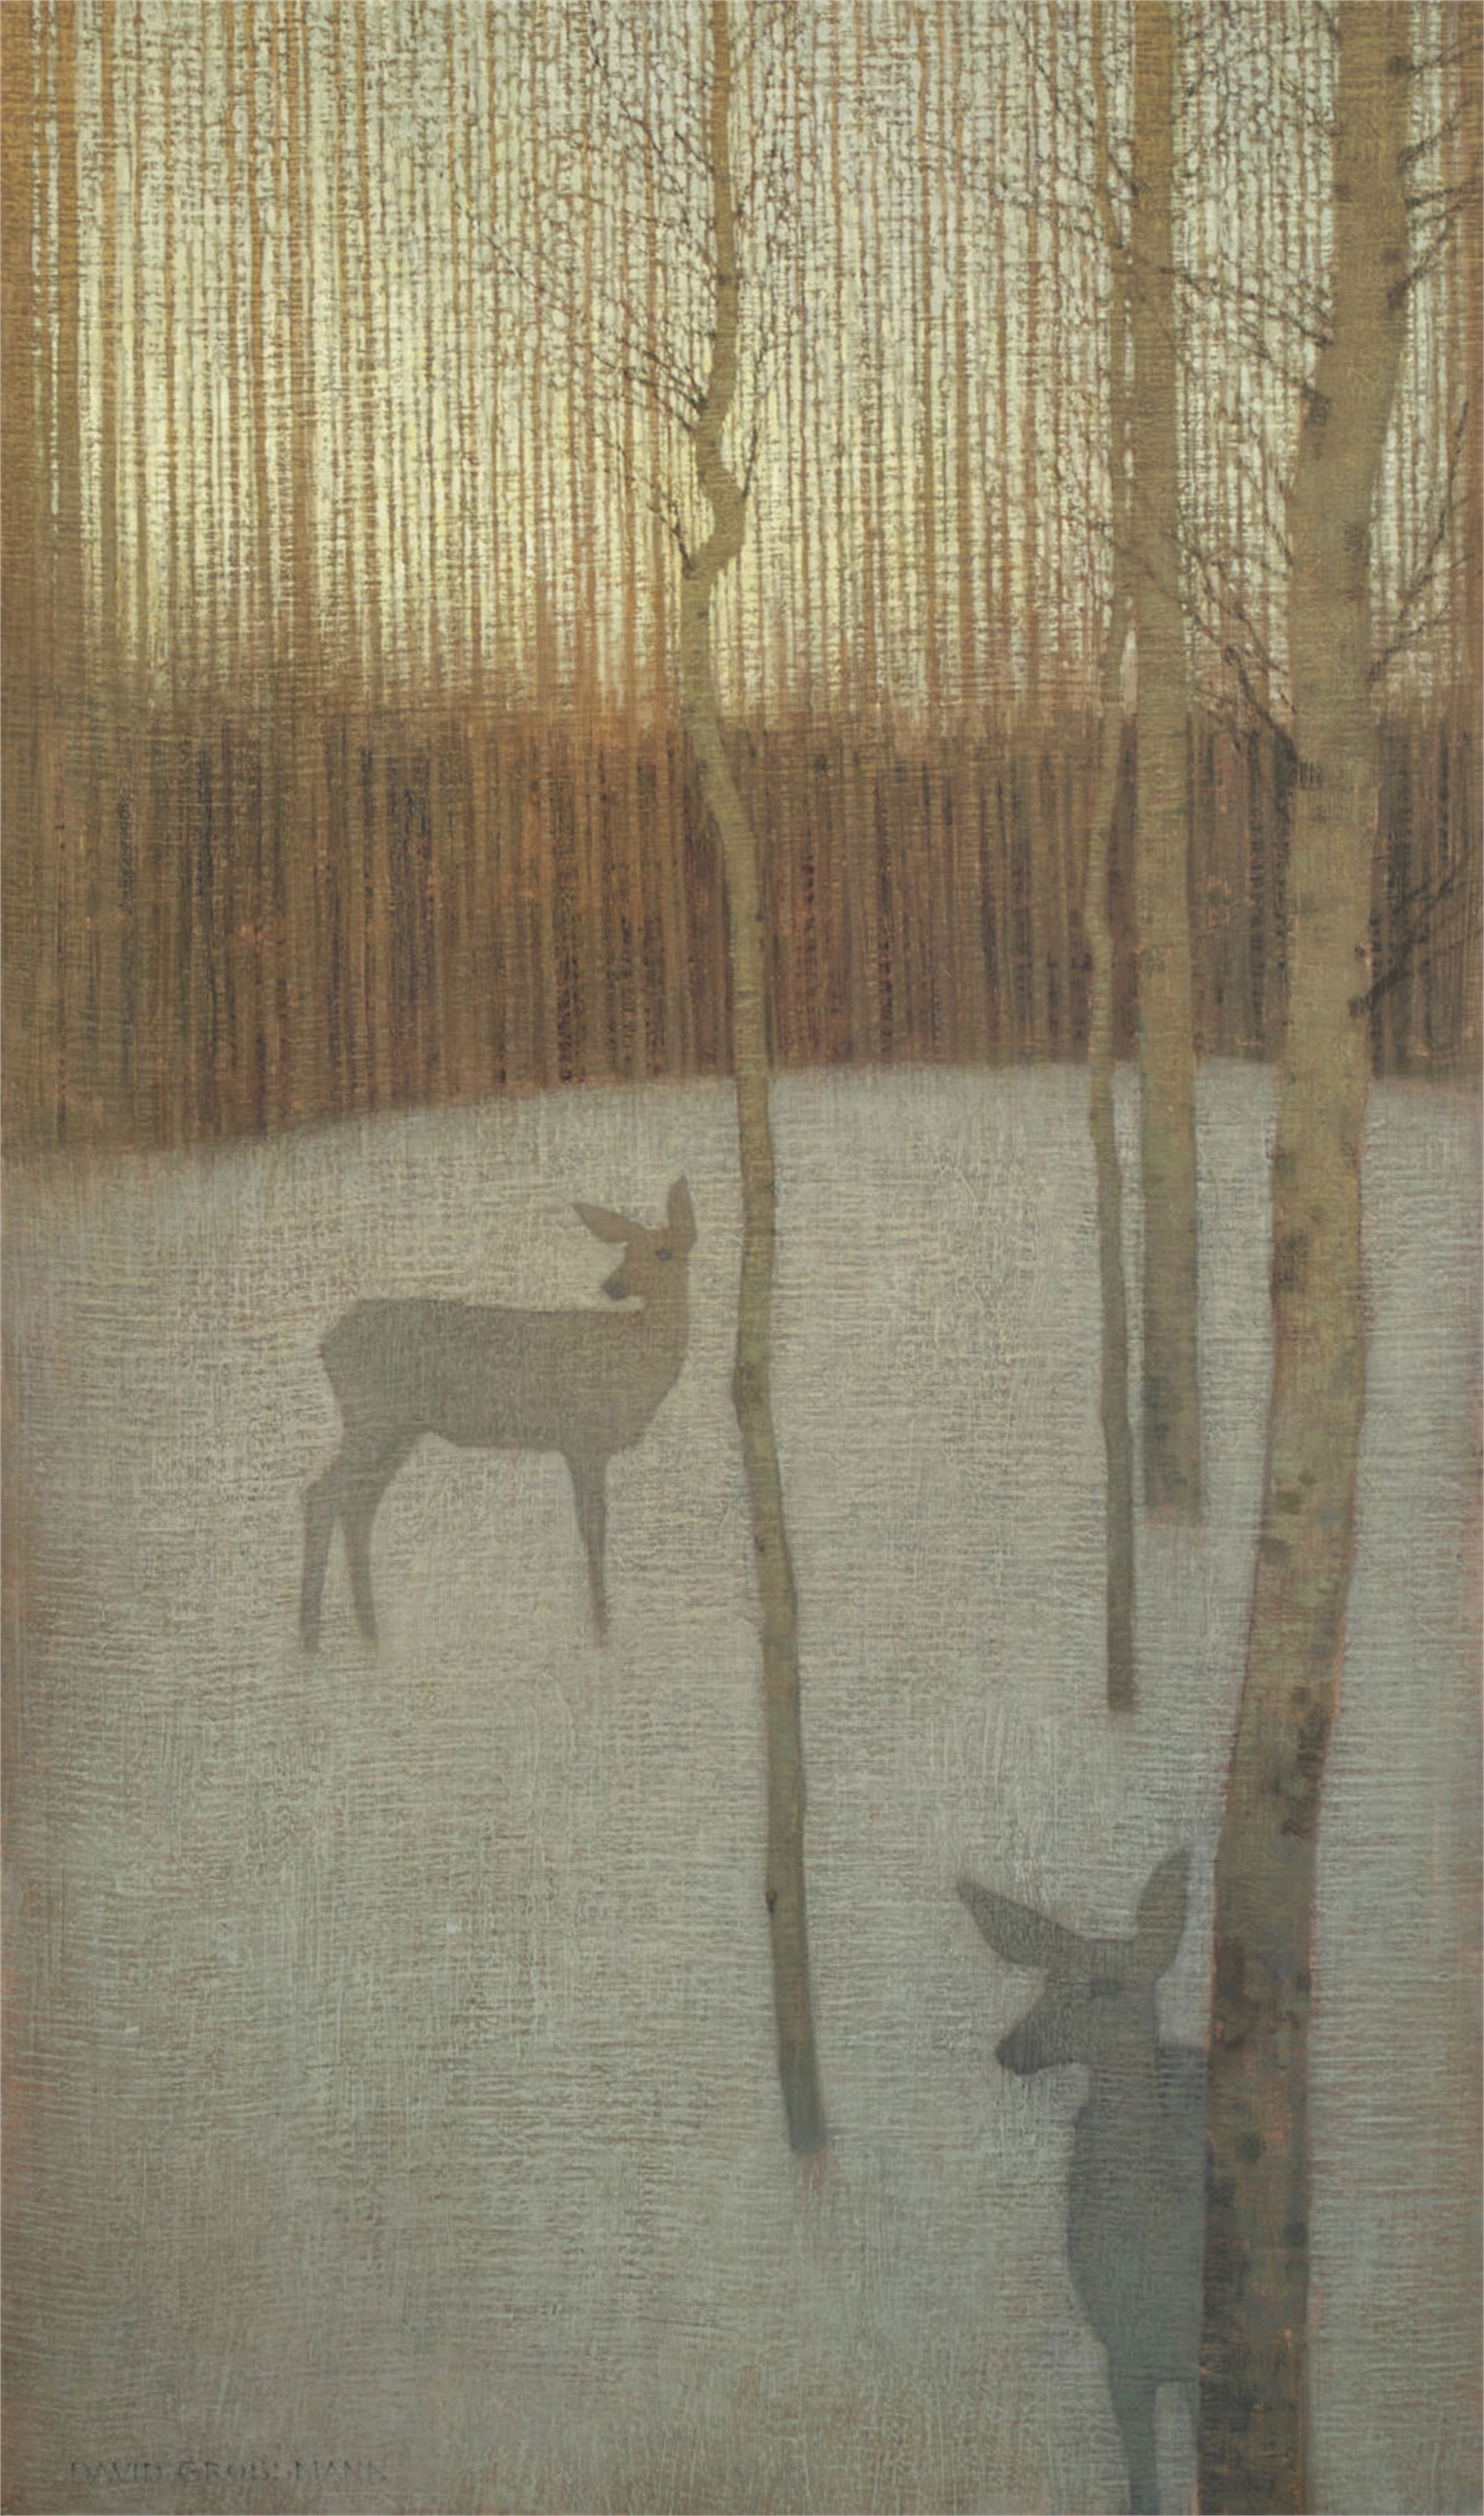 At Dusk in the Winter Forest by David Grossmann